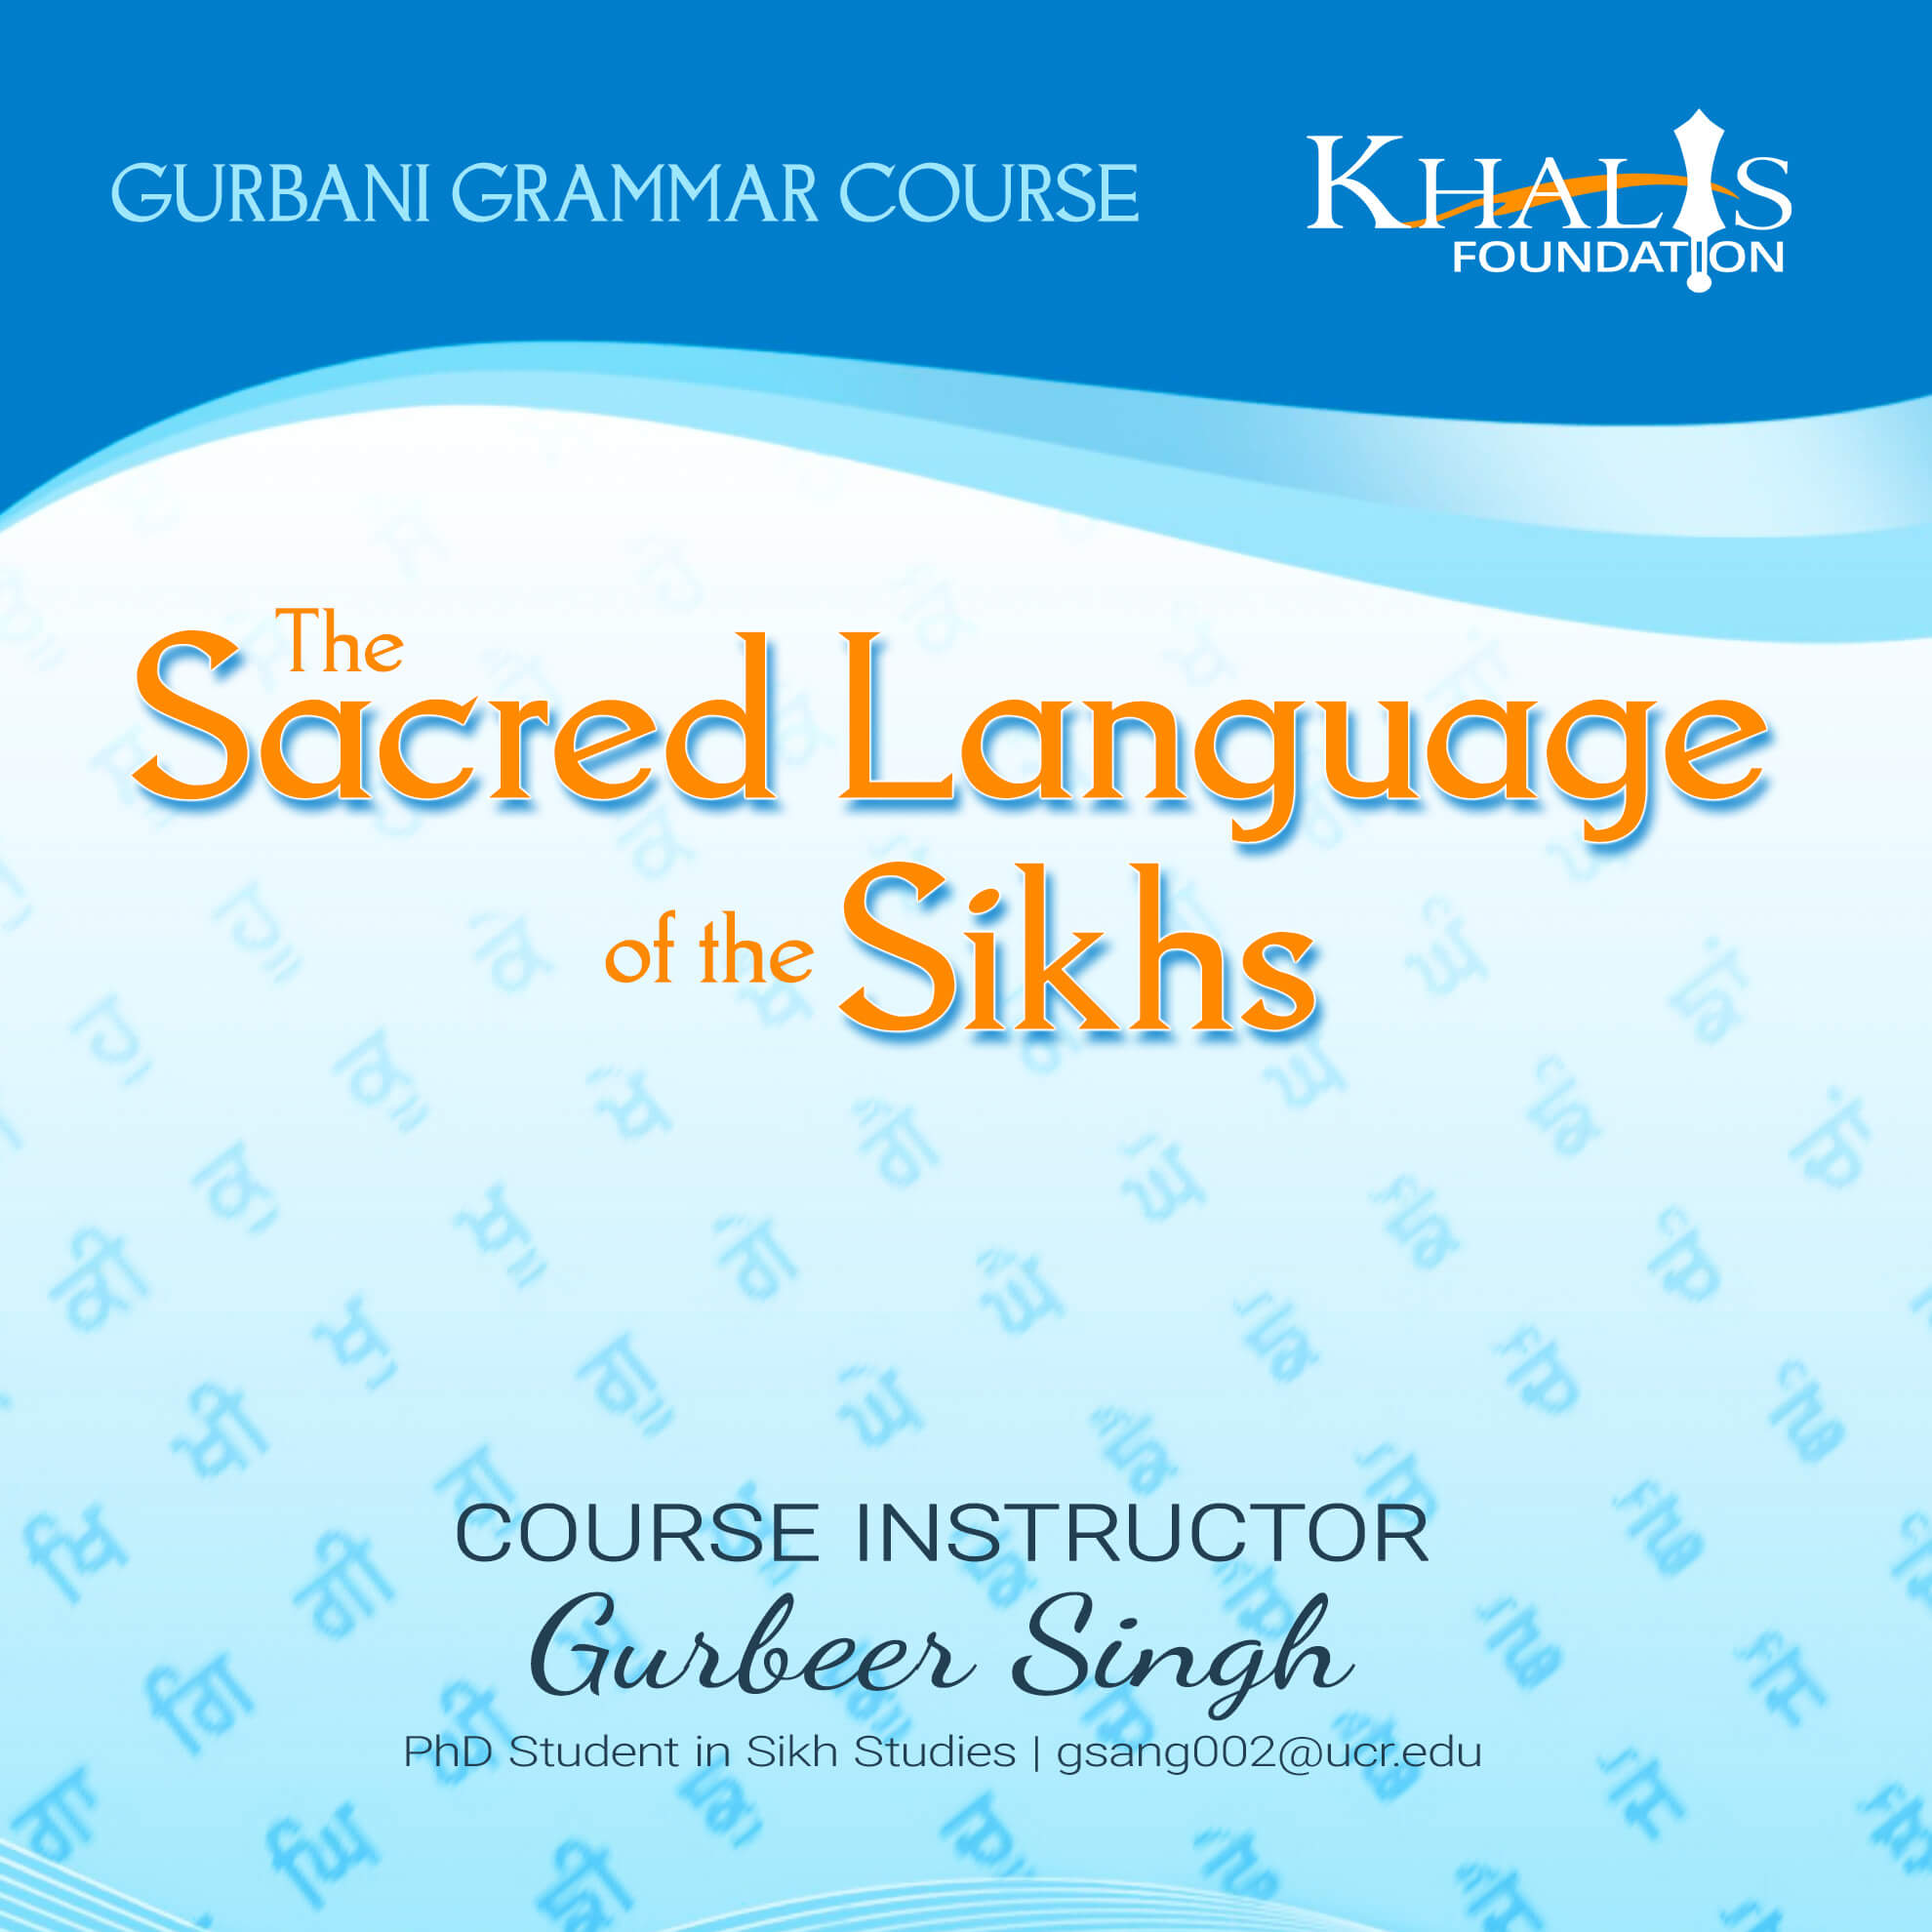 The Sacred Language of the Sikhs